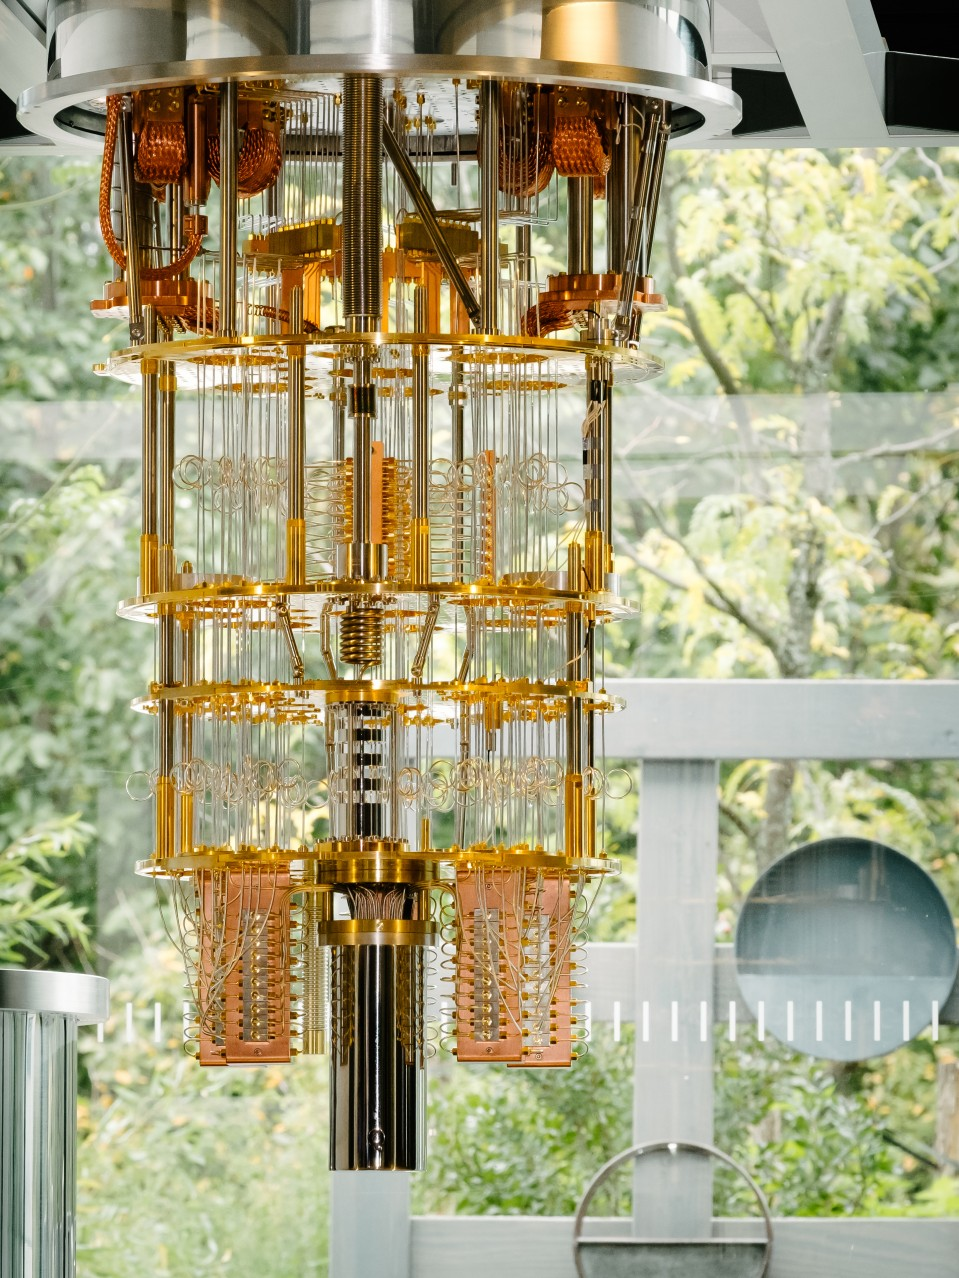 IBM Raises the Bar with a 50-Qubit Quantum Computer - MIT